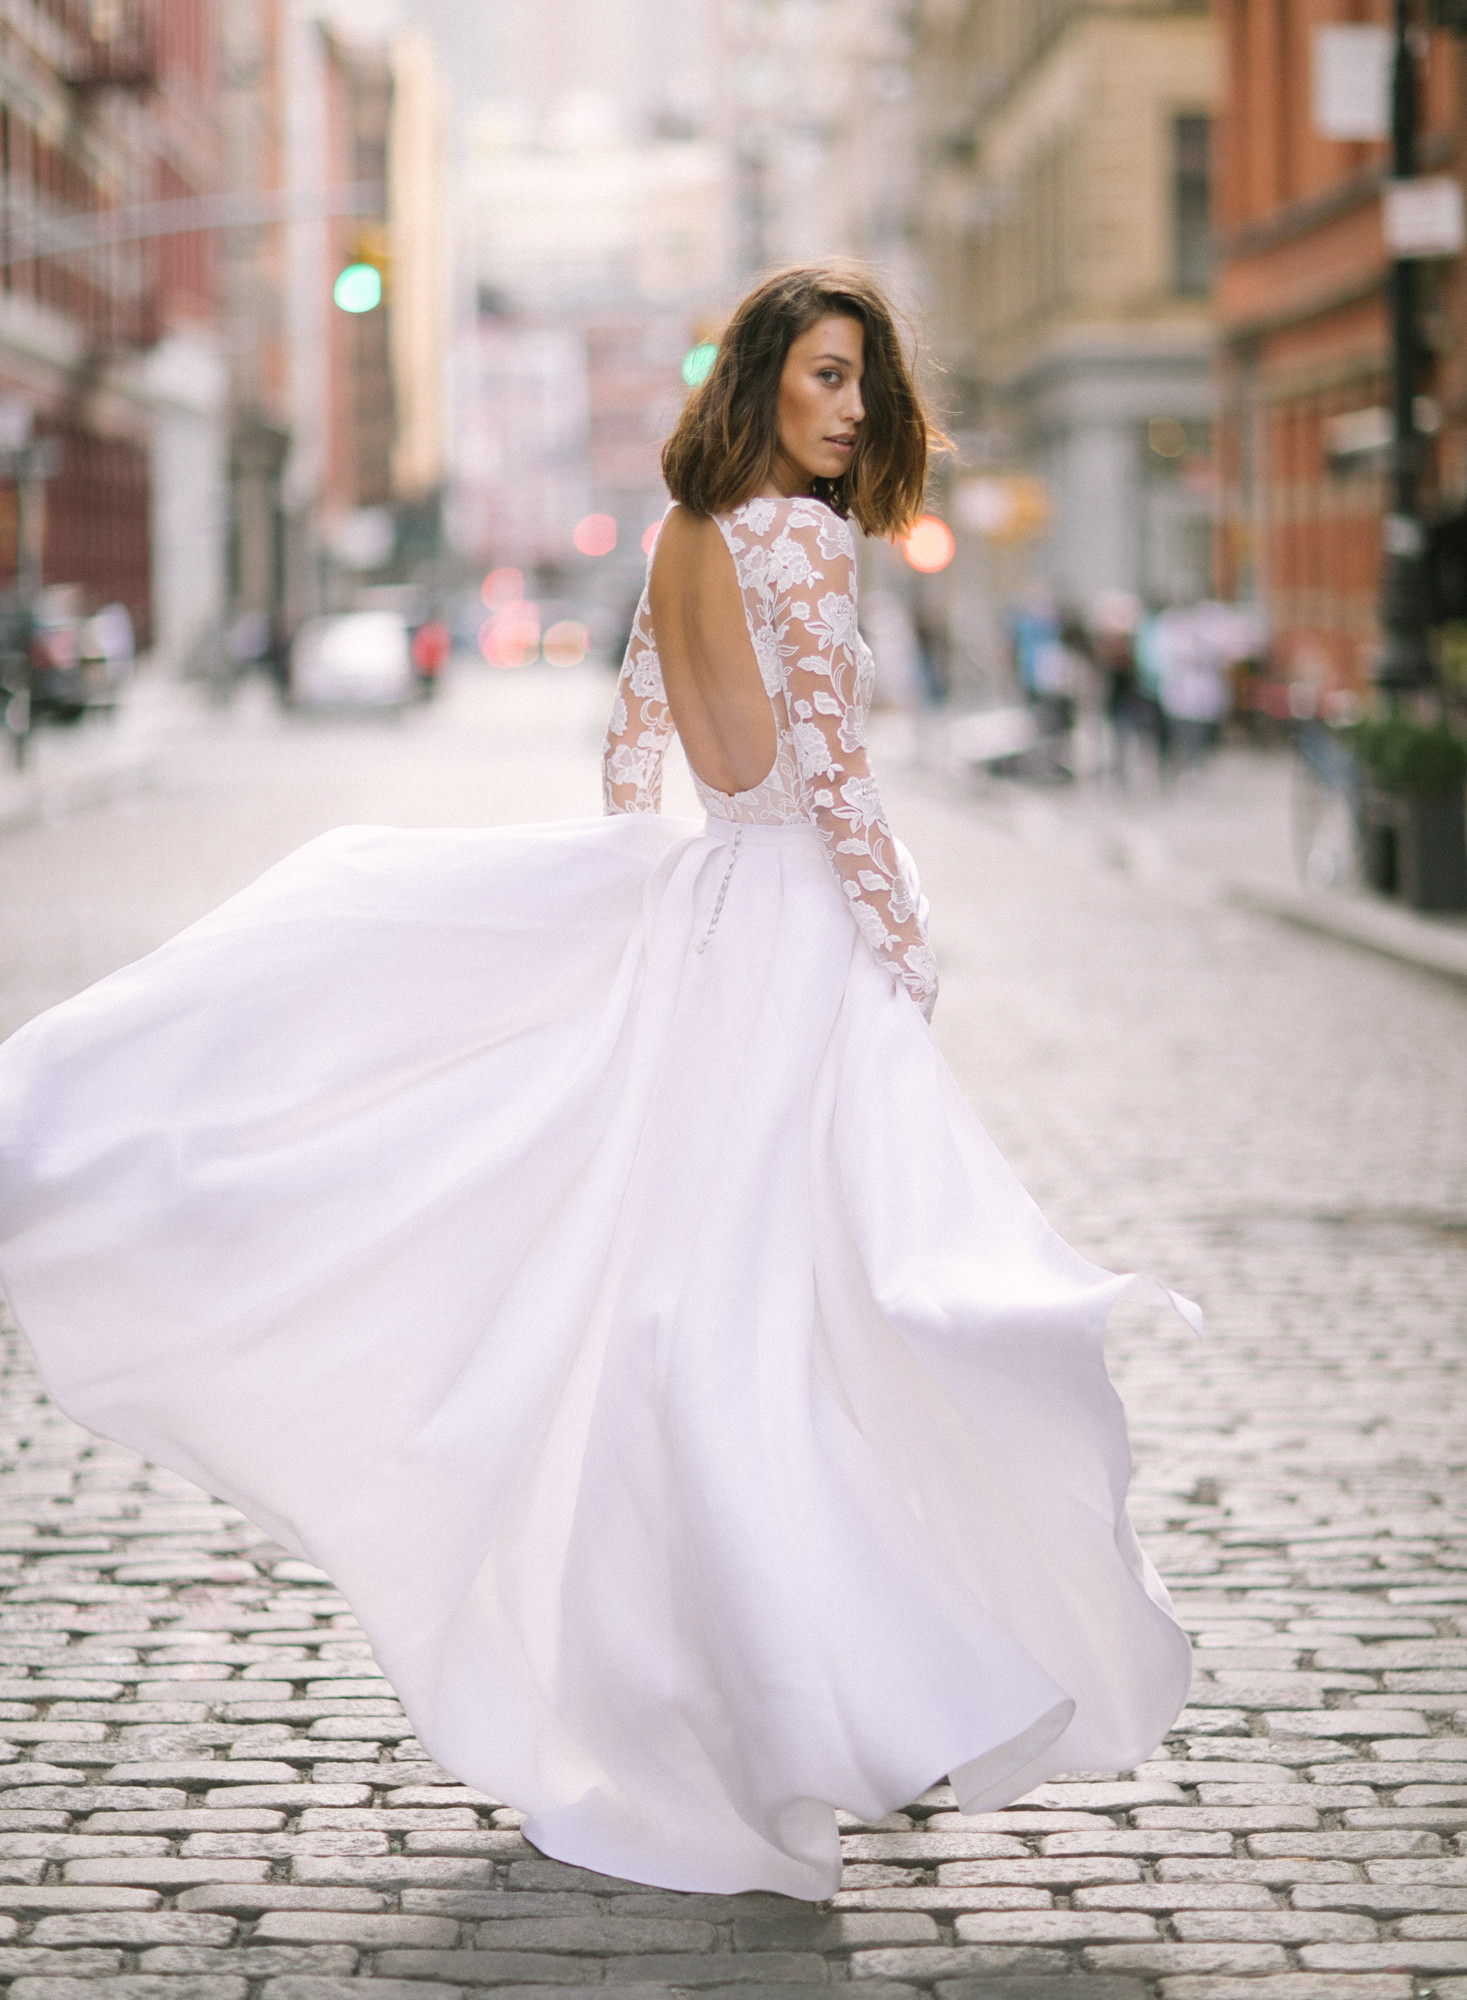 Bride in backless long-sleeve lace gown, by Greg Finck